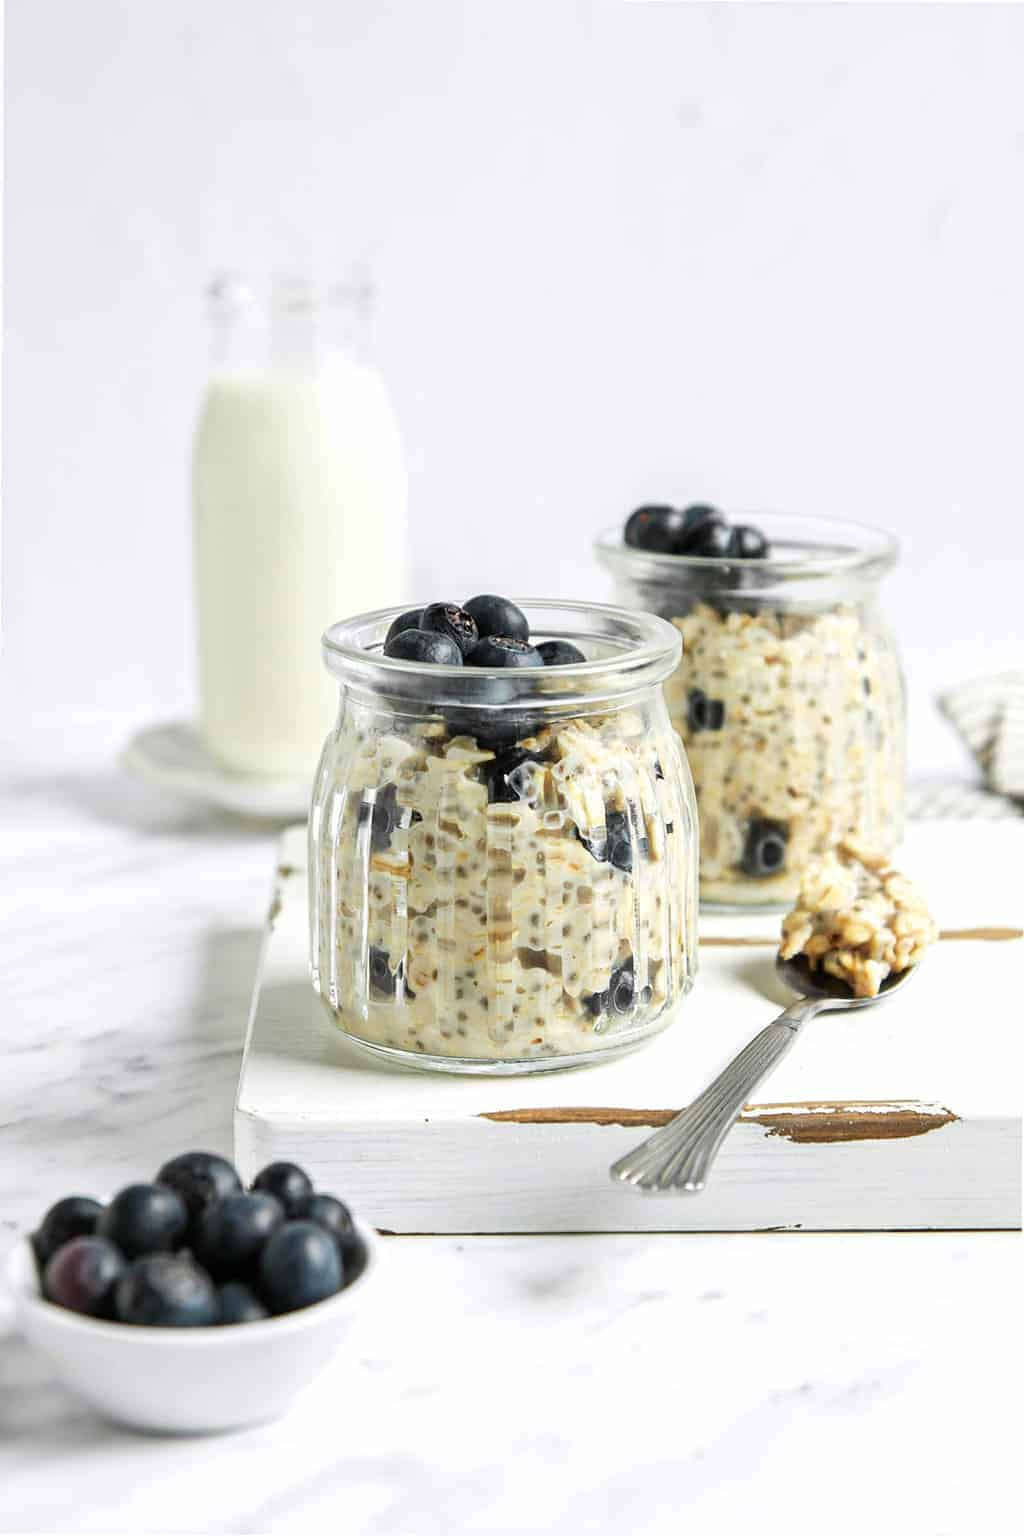 Two jars of overnight oats with blueberries on a white wooden board.